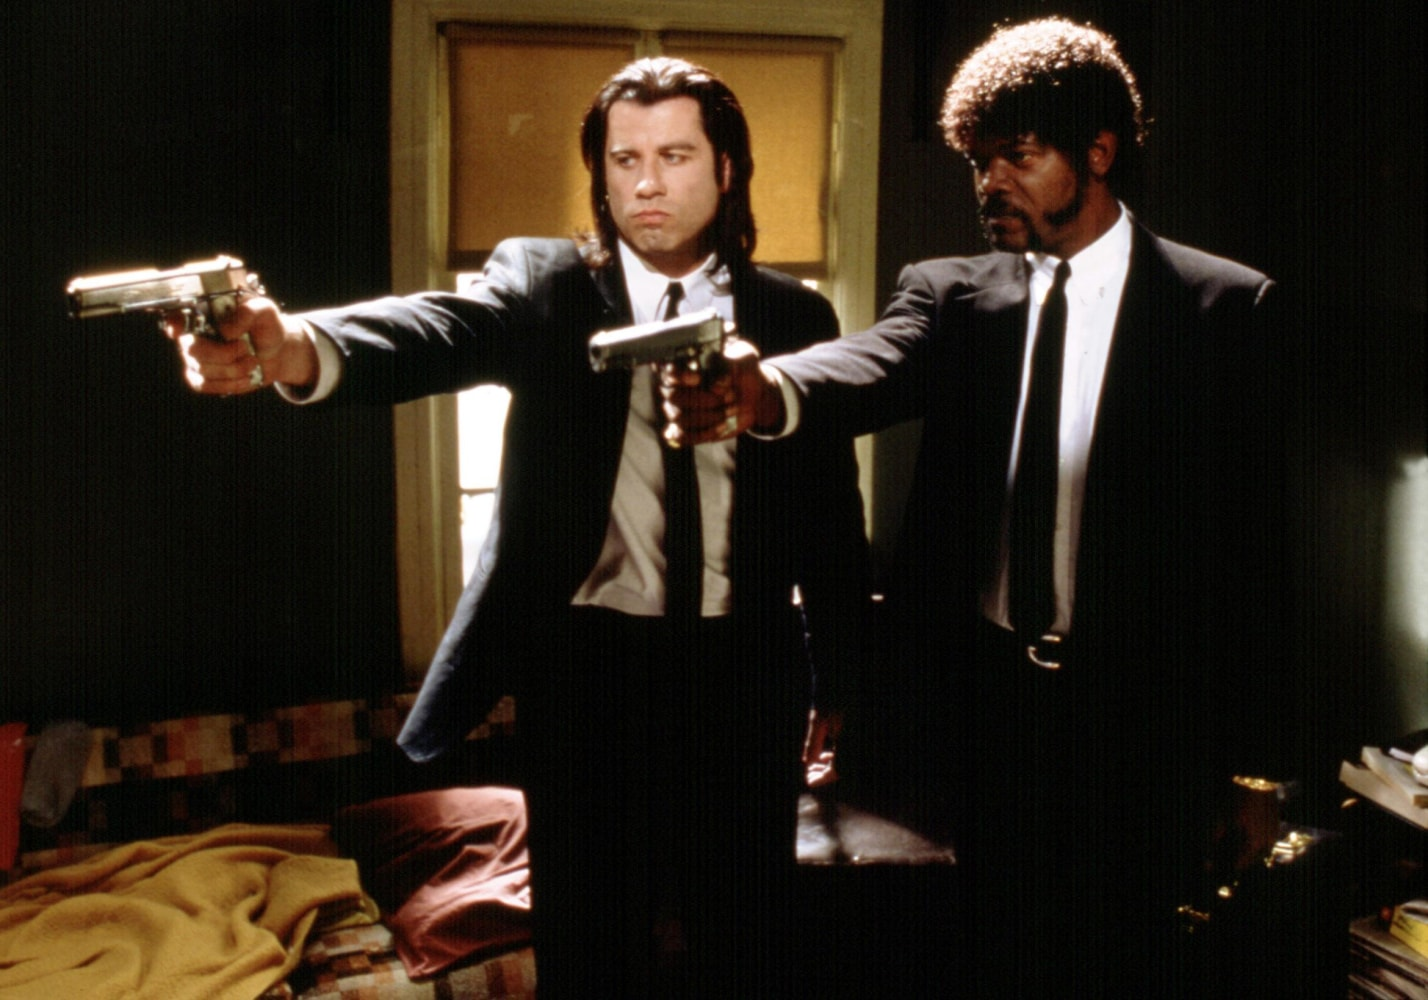 an analysis of pulp fiction by quentin tarantino Quentin tarantino saw this film and decided to include this character in pulp fiction (1994) but as a cabdriver this short may have also inspired the character of the wolf played by harvey keitel.